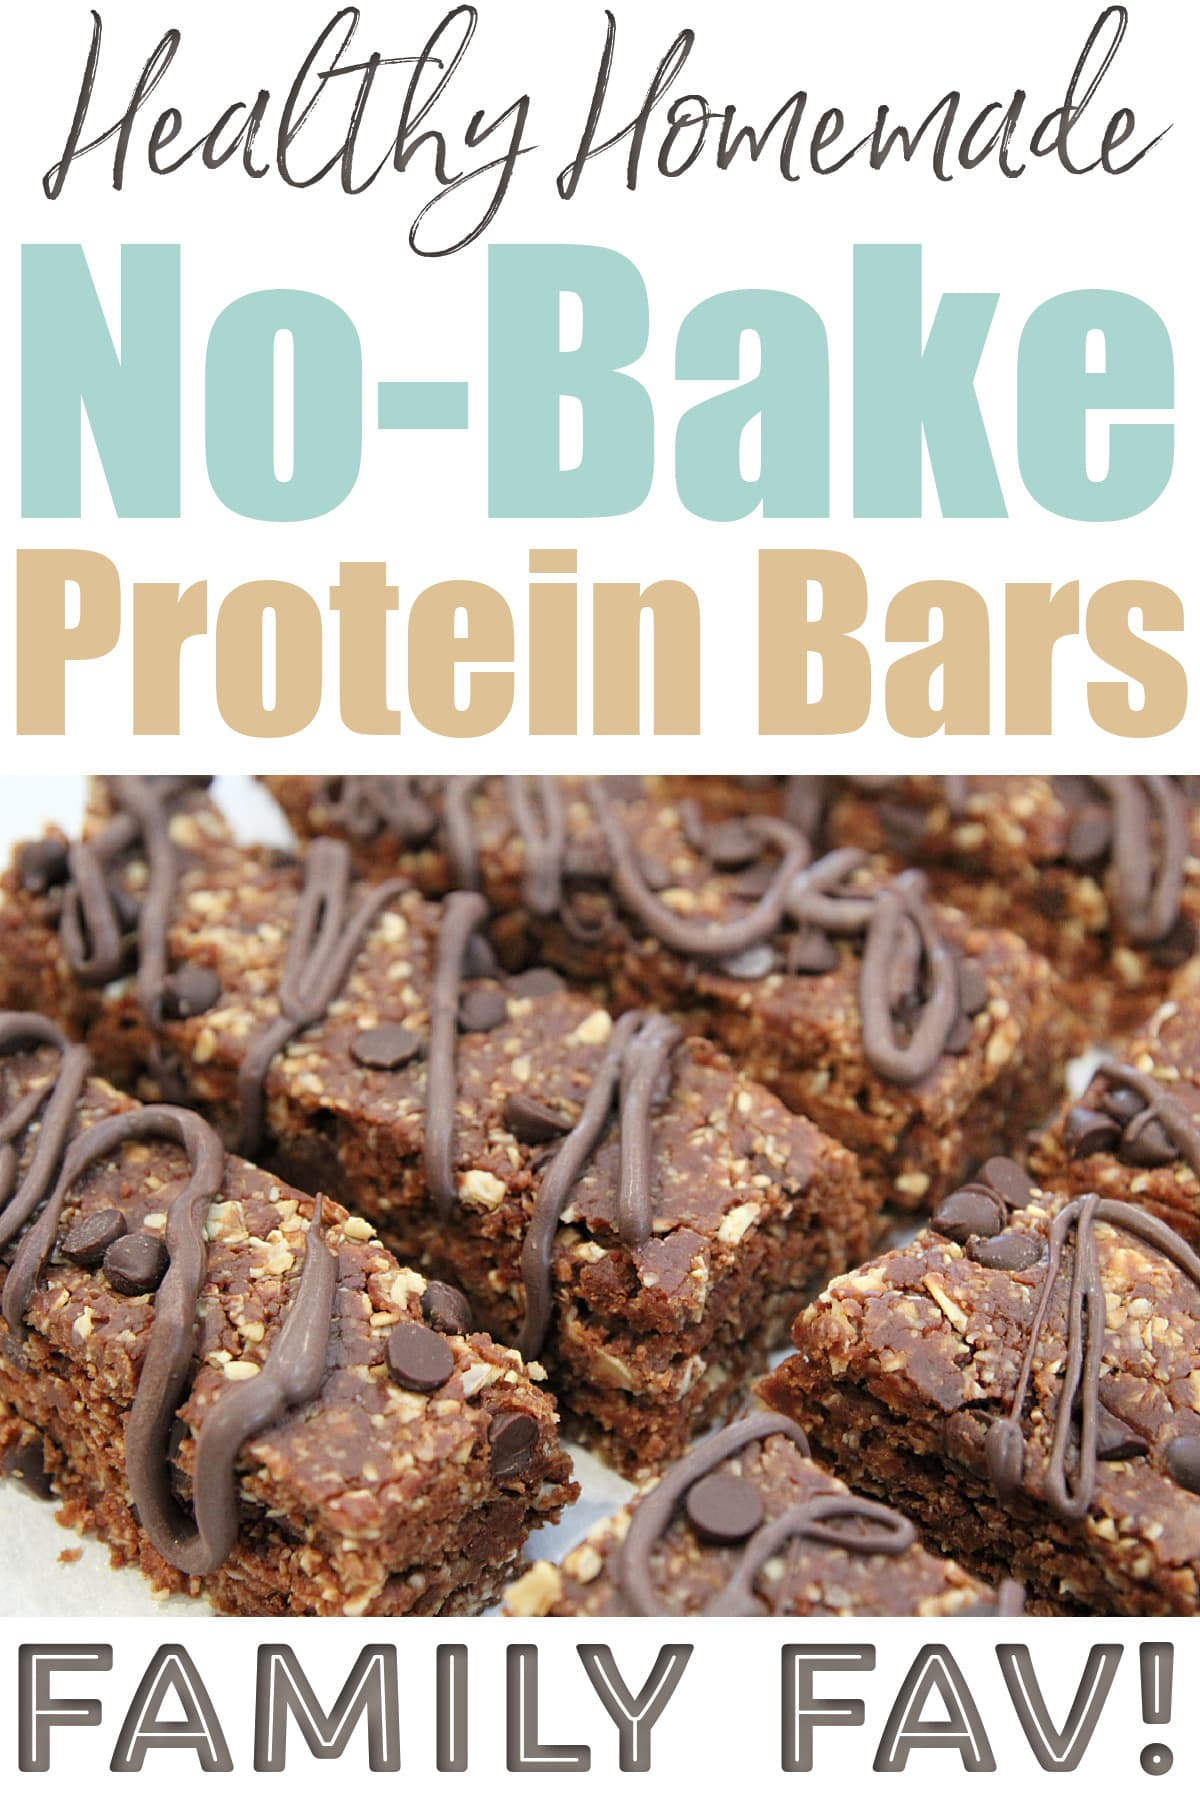 Healthy Homemade Protein Bar Recipe